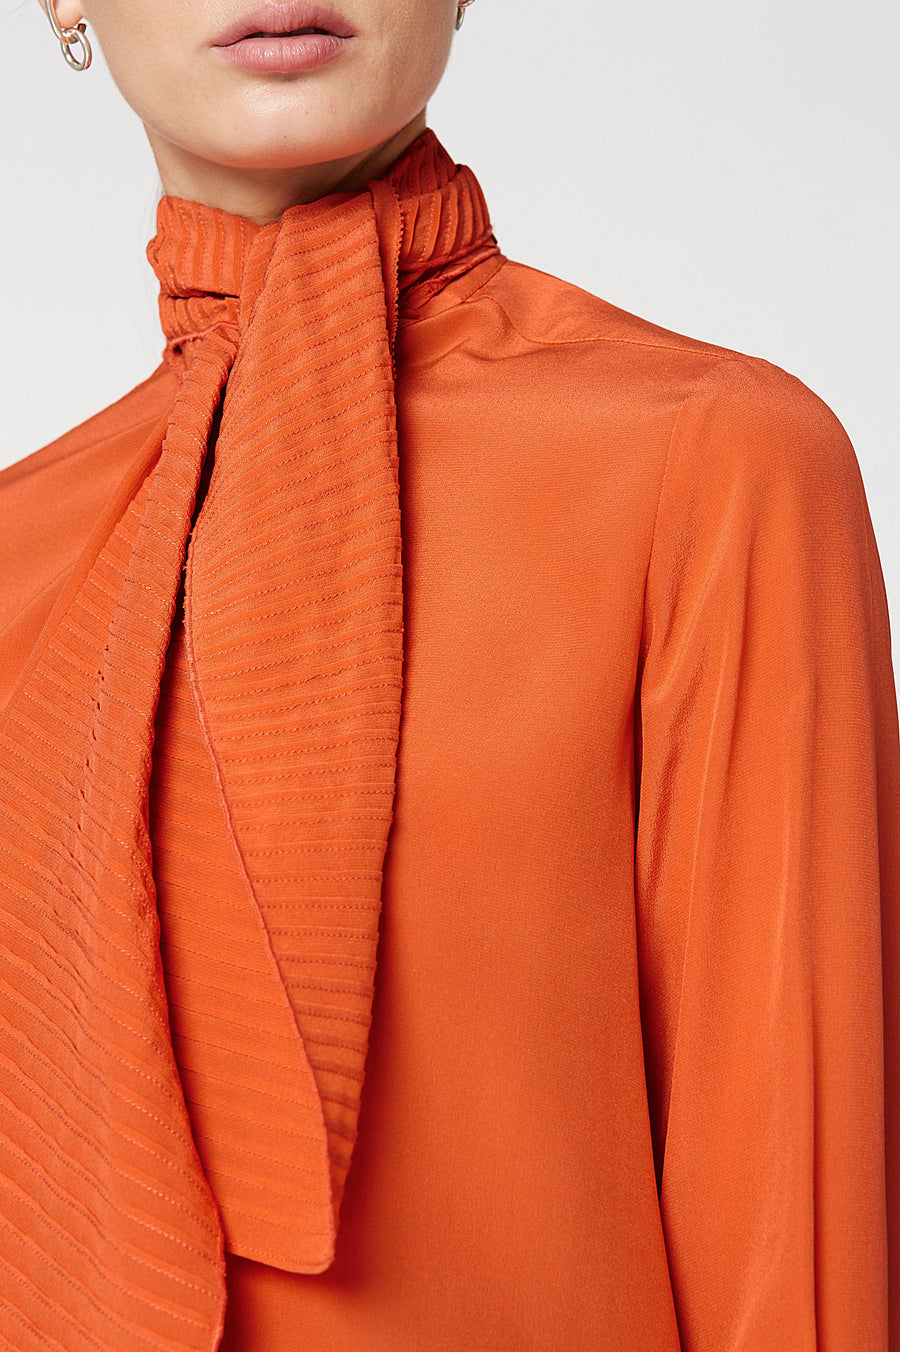 CDC PINTUCK TIE BLOUSE, ORANGE color